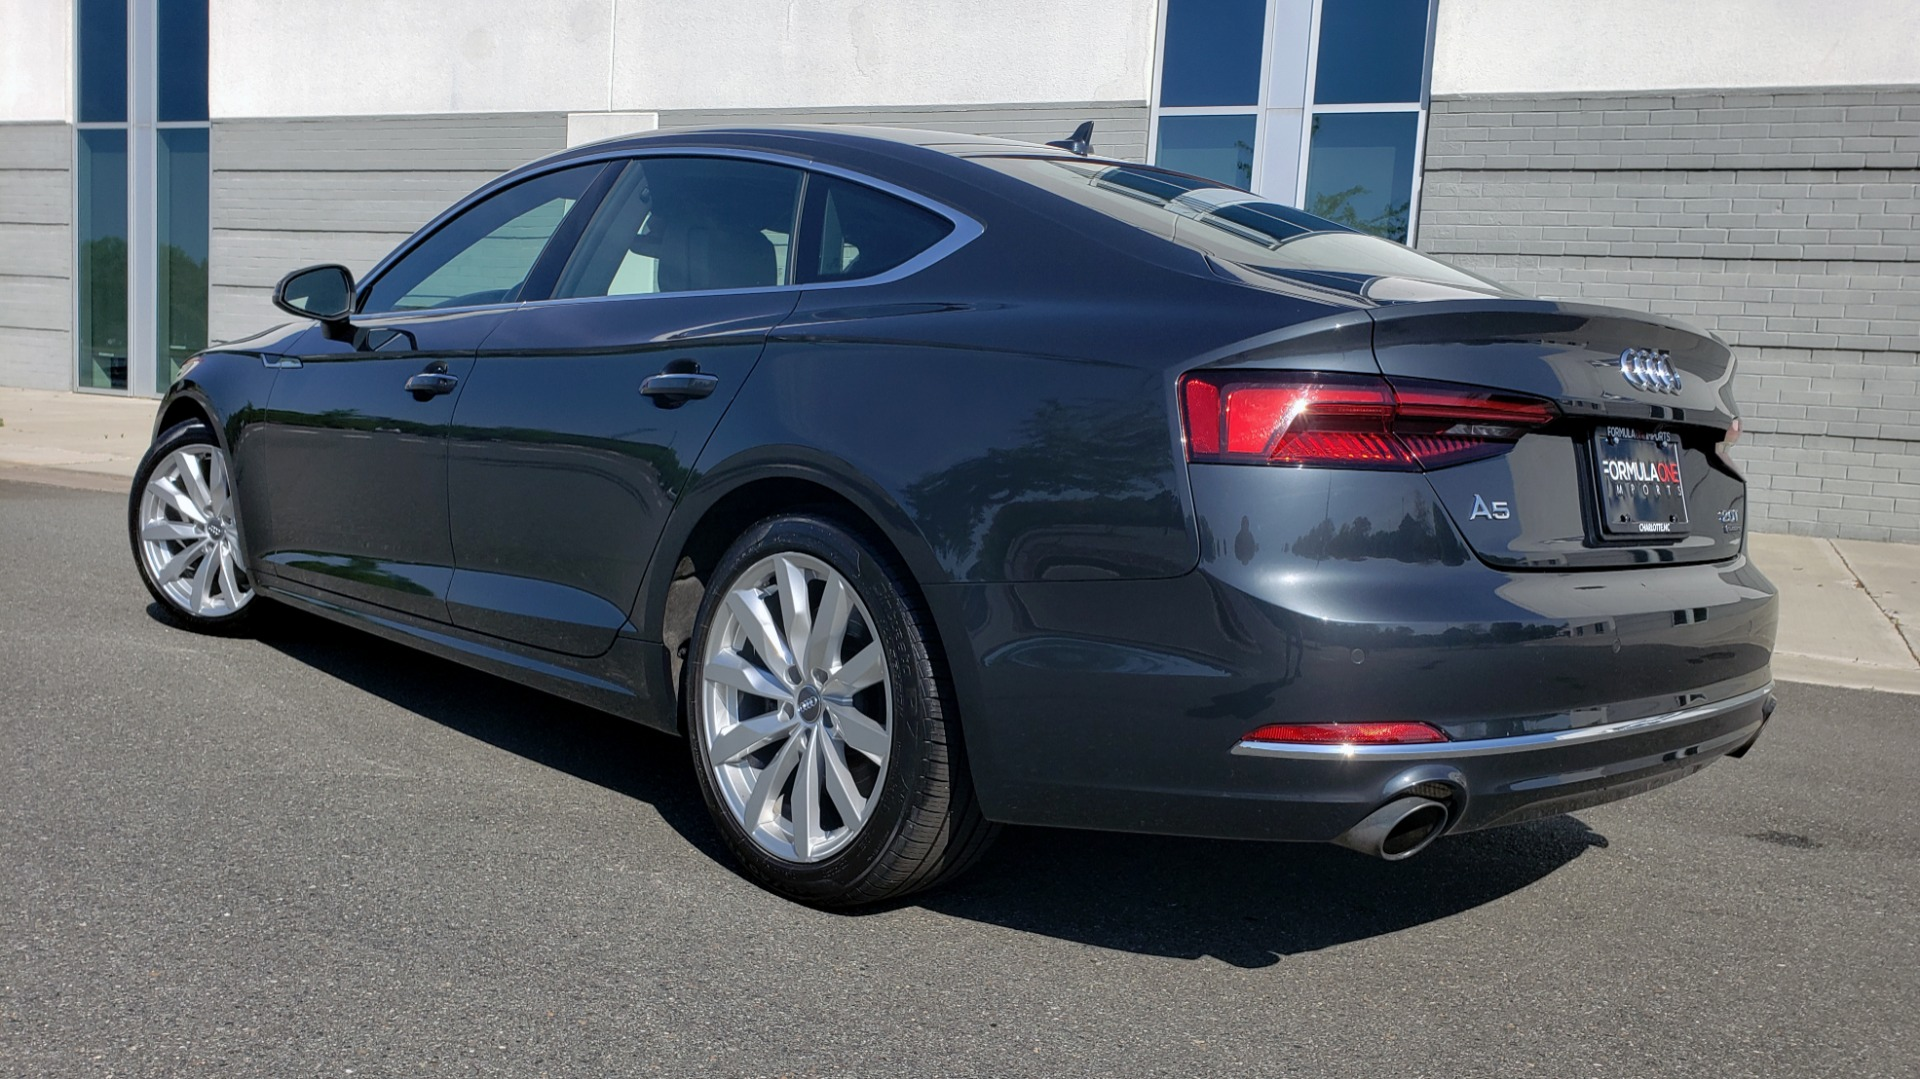 Used 2018 Audi A5 SPORTBACK PREMIUM PLUS 2.0T / AWD / NAV / B&O SND / SUNROOF / REARVIEW for sale Sold at Formula Imports in Charlotte NC 28227 85